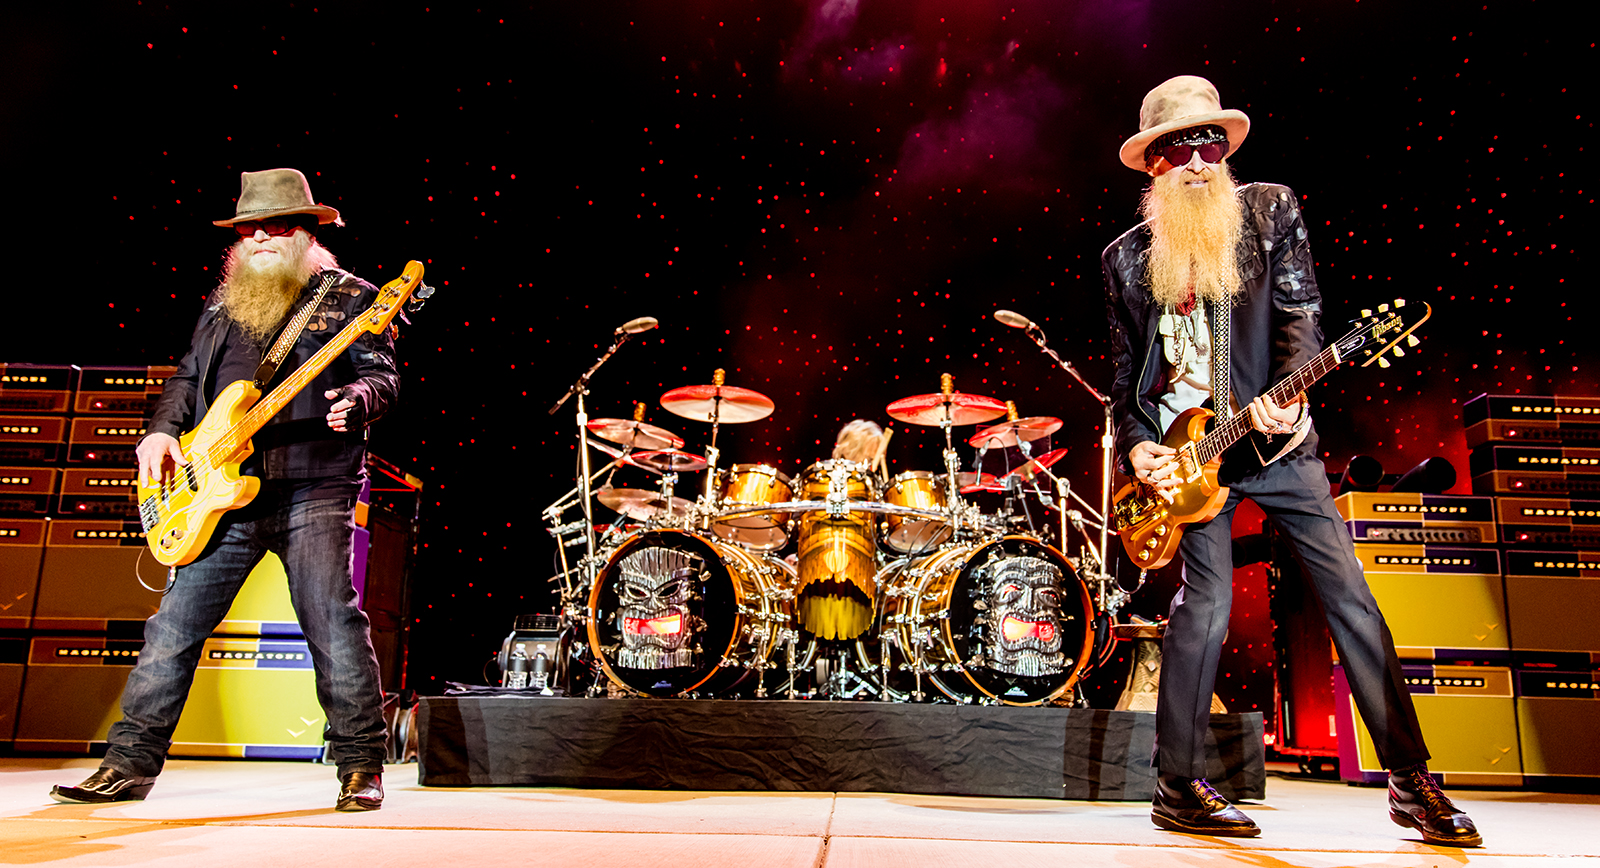 zz-top-2016-tour-concert-review-photos-ironstone-vineyards-murphys-reg-entertainment-fi